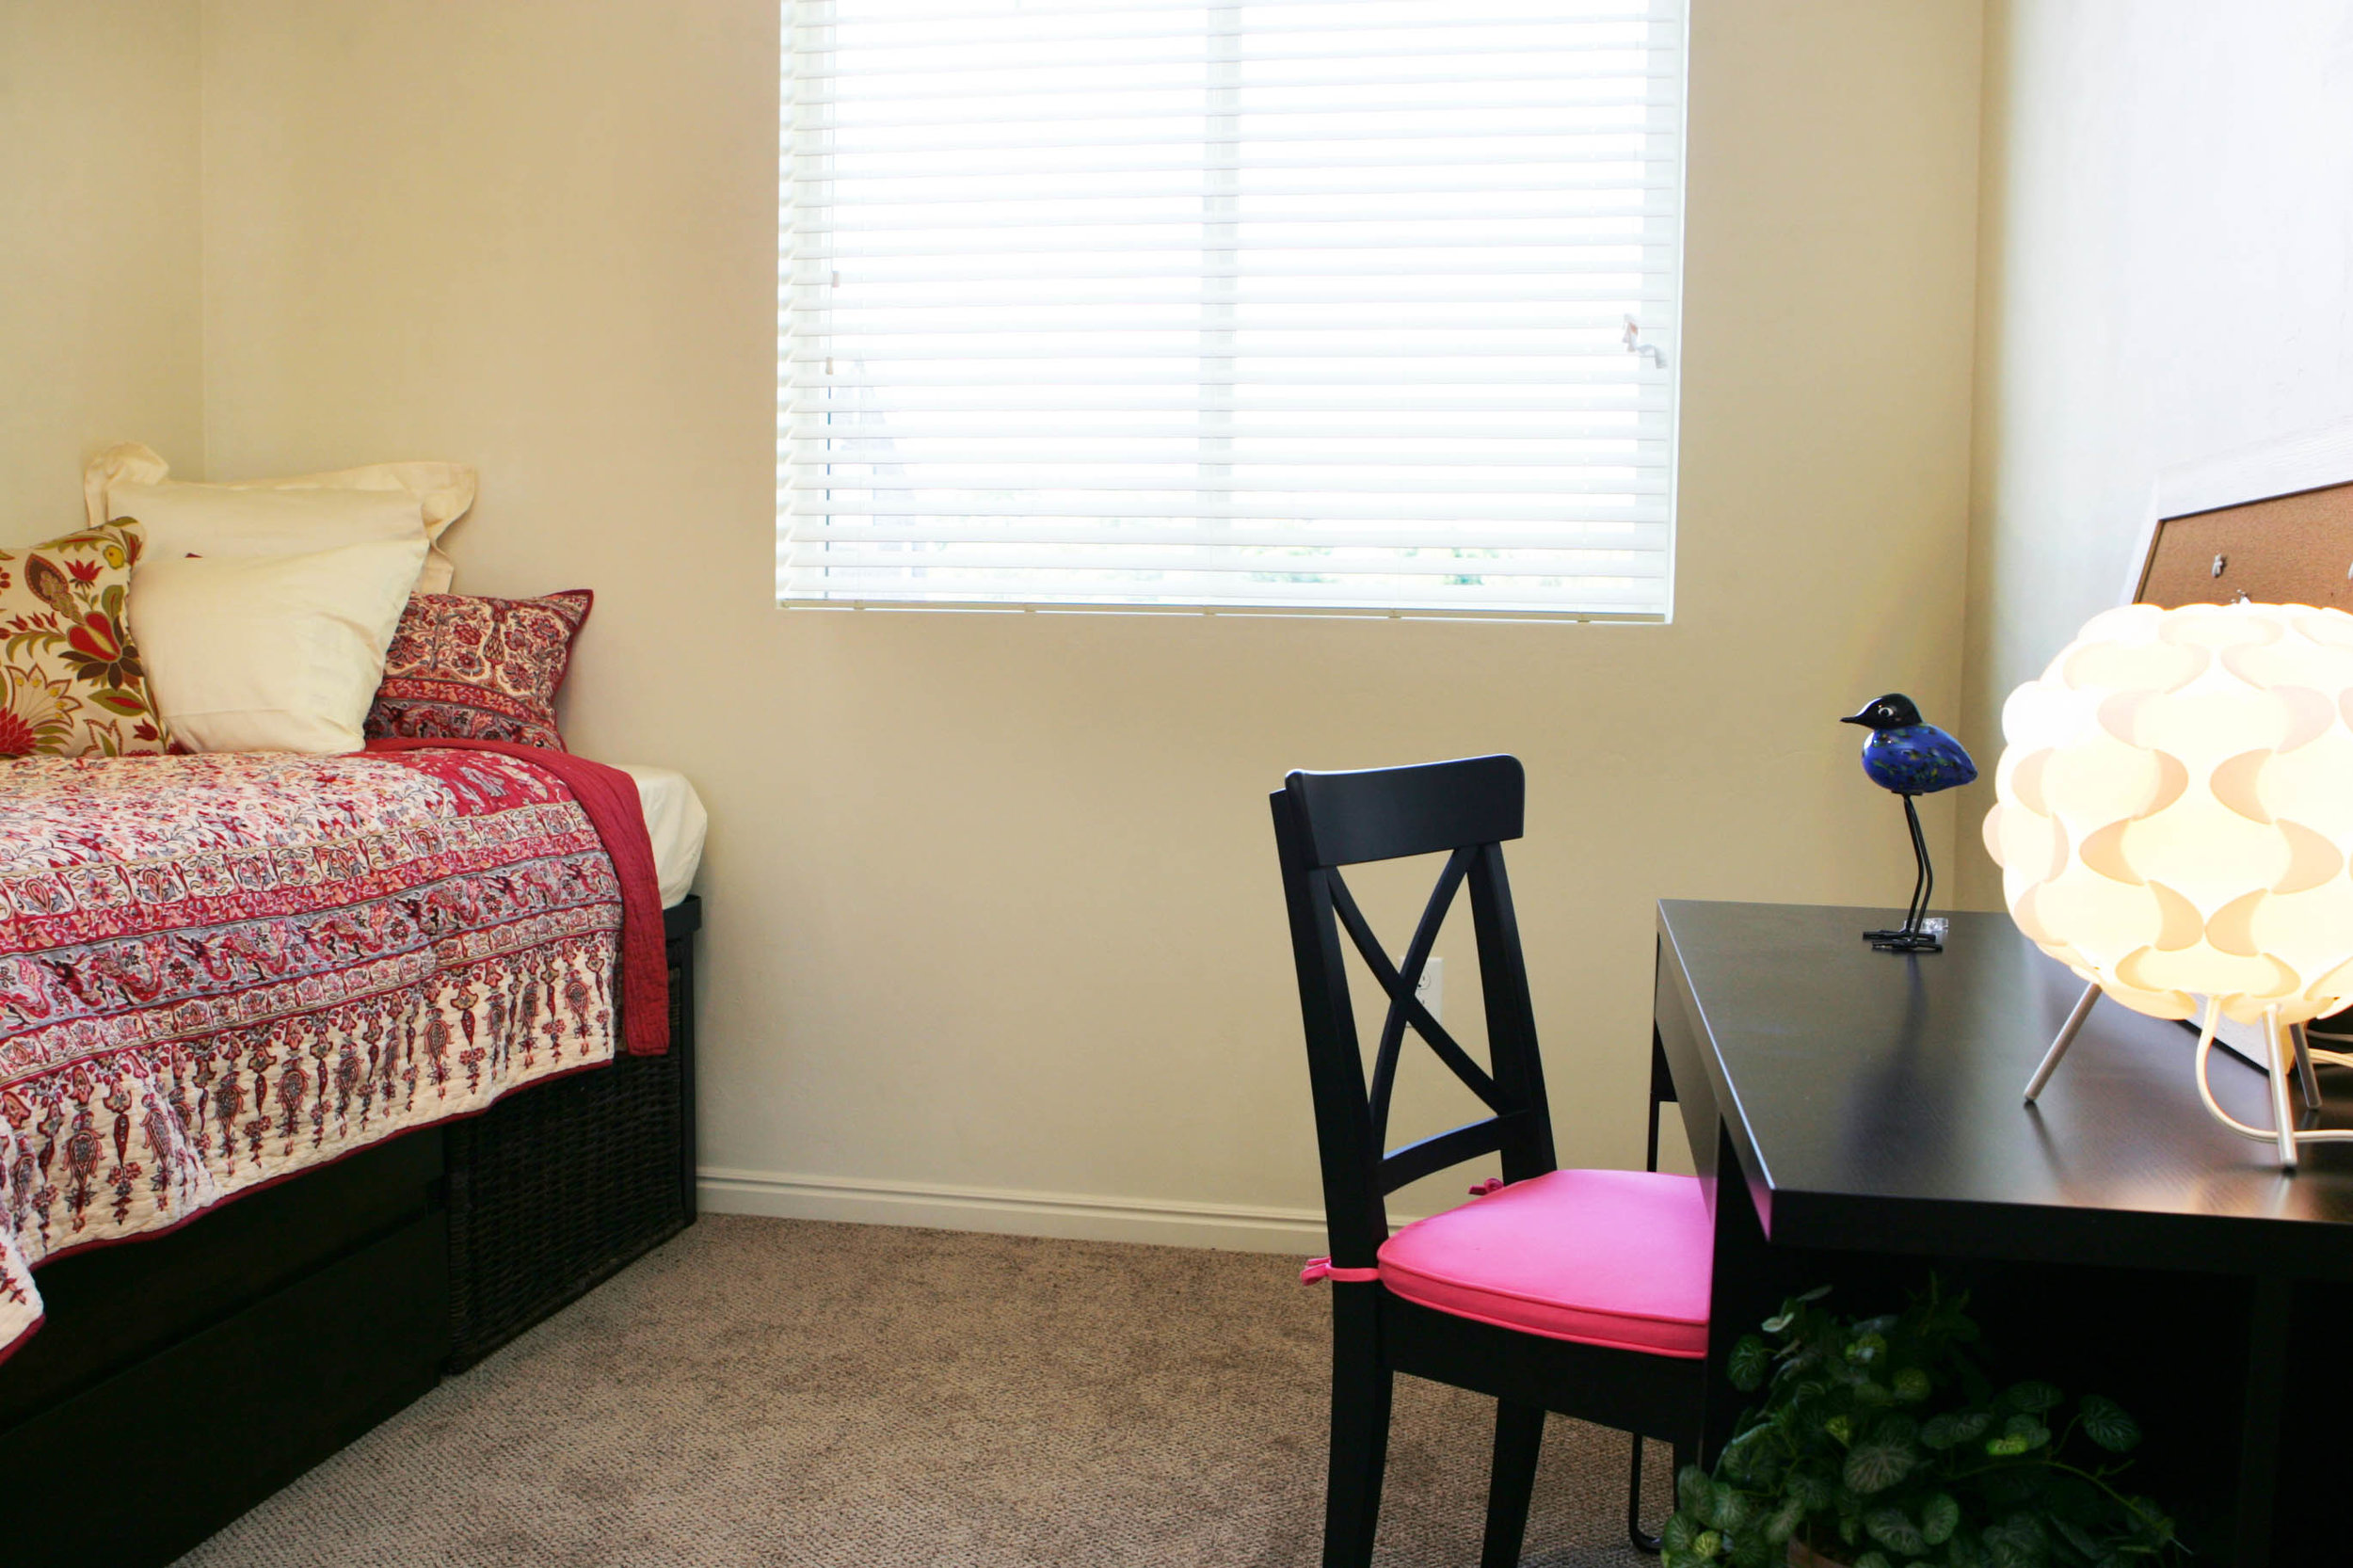 provo housing apartments in provo single bedroom.jpg